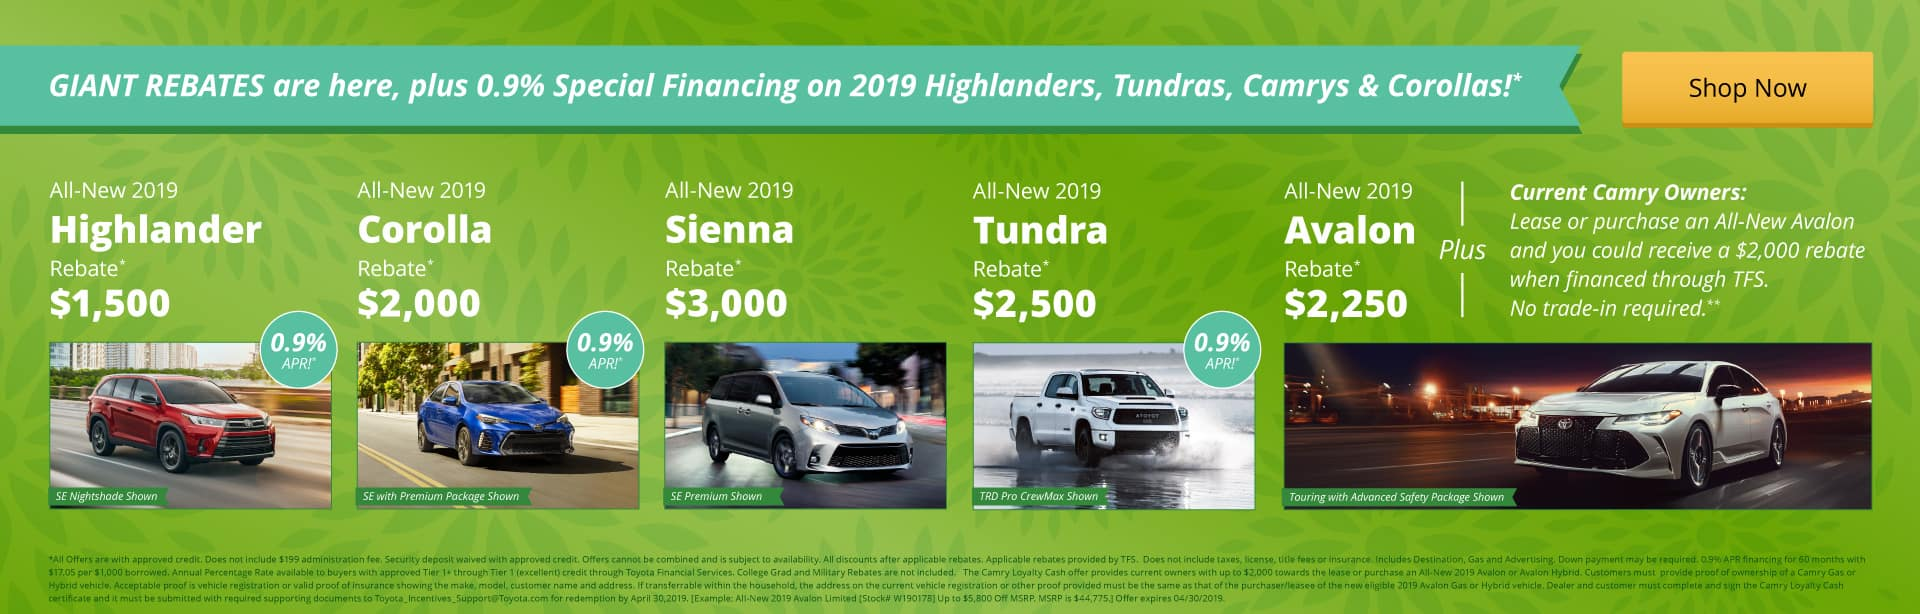 Giant Rebates + 0.9% APR Special Financing is here!